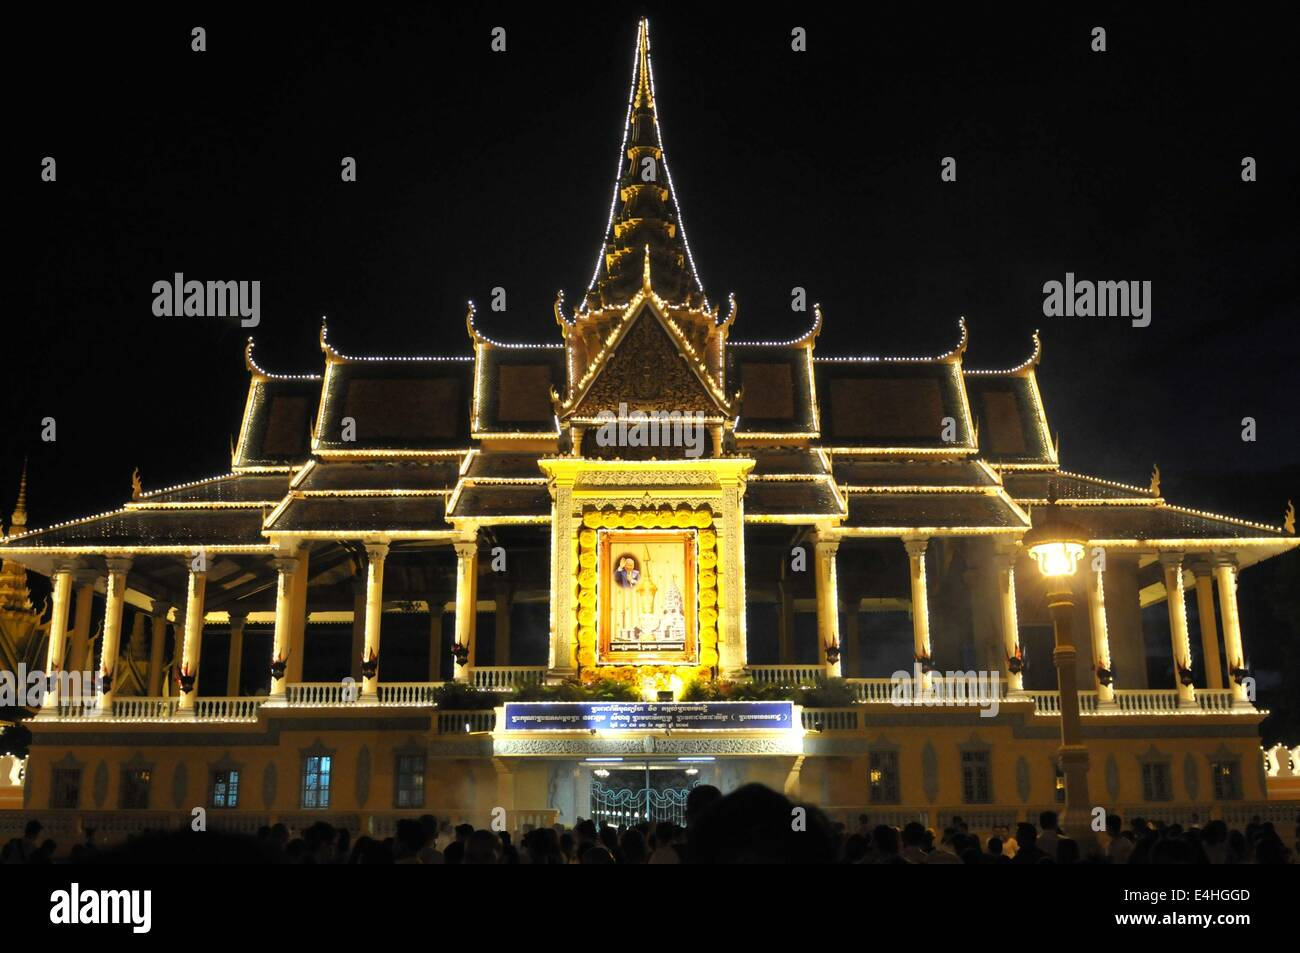 Phnom Penh, Cambodia. 11th July, 2014. People gather in front of the Royal Palace in Phnom Penh, Cambodia, July - Stock Image